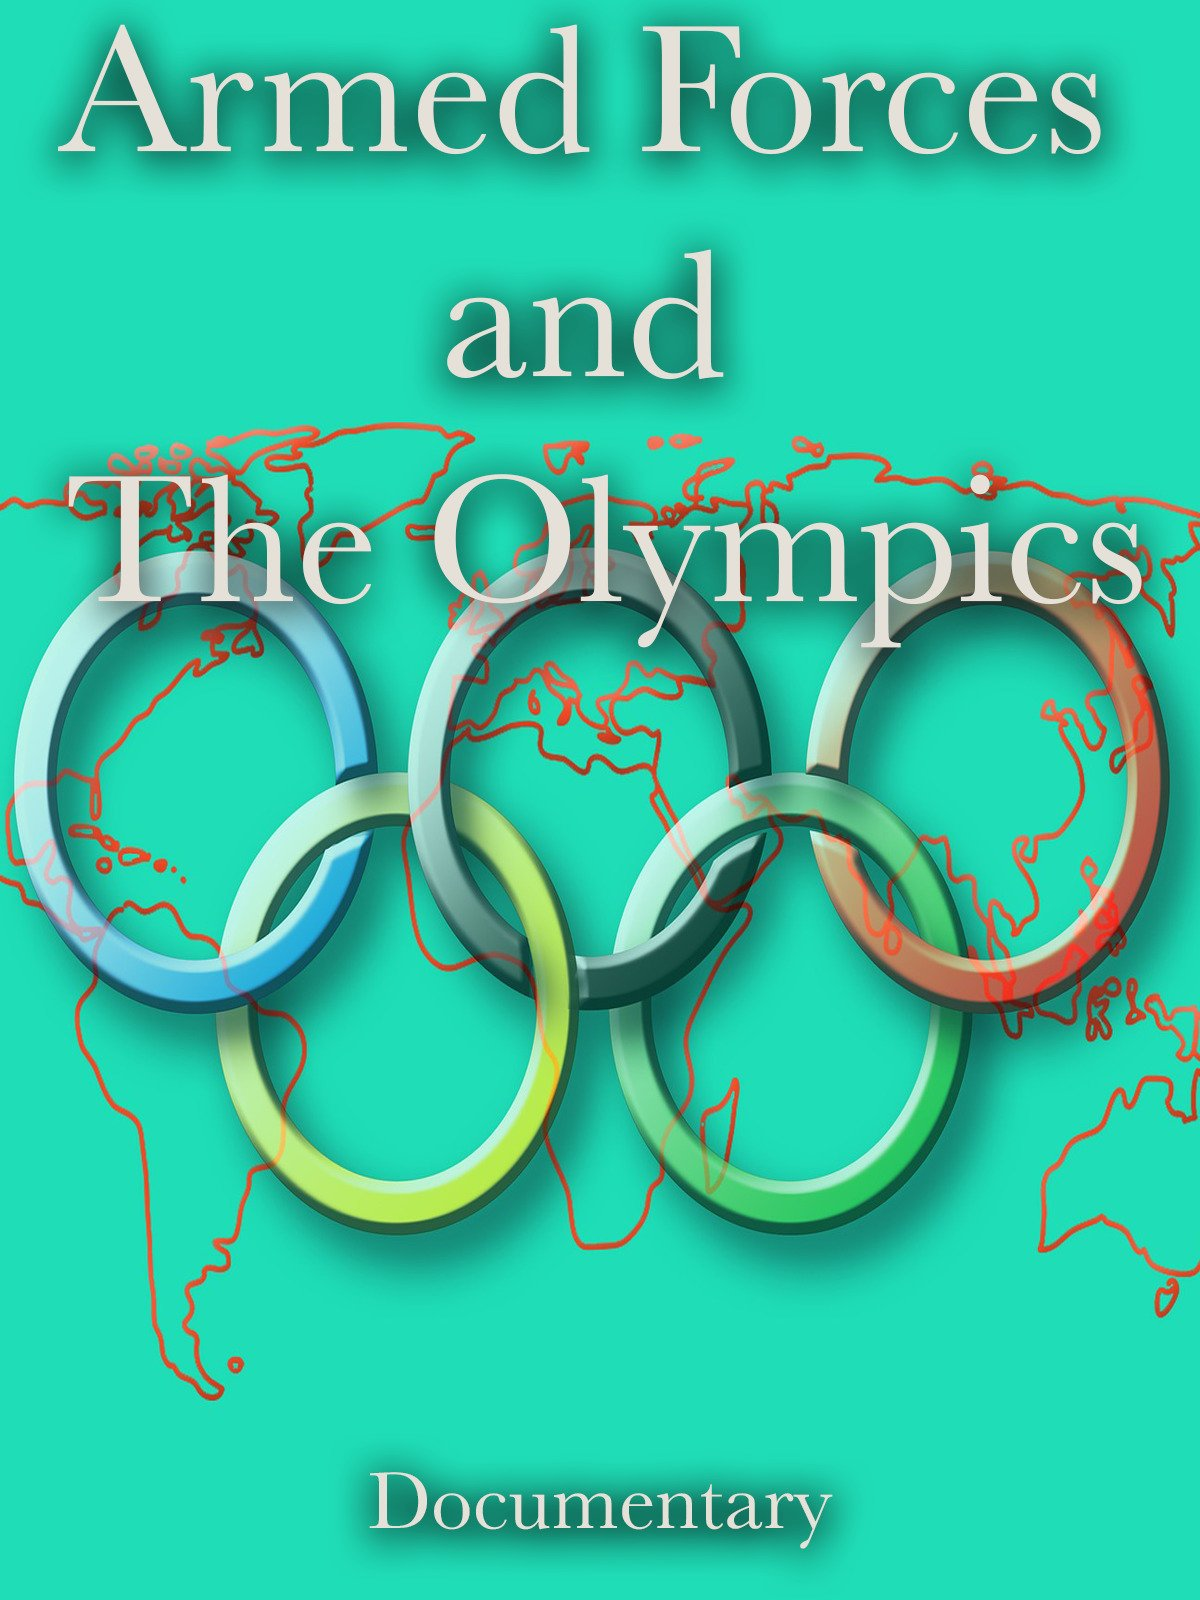 Armed Forces and The Olympics Documentary